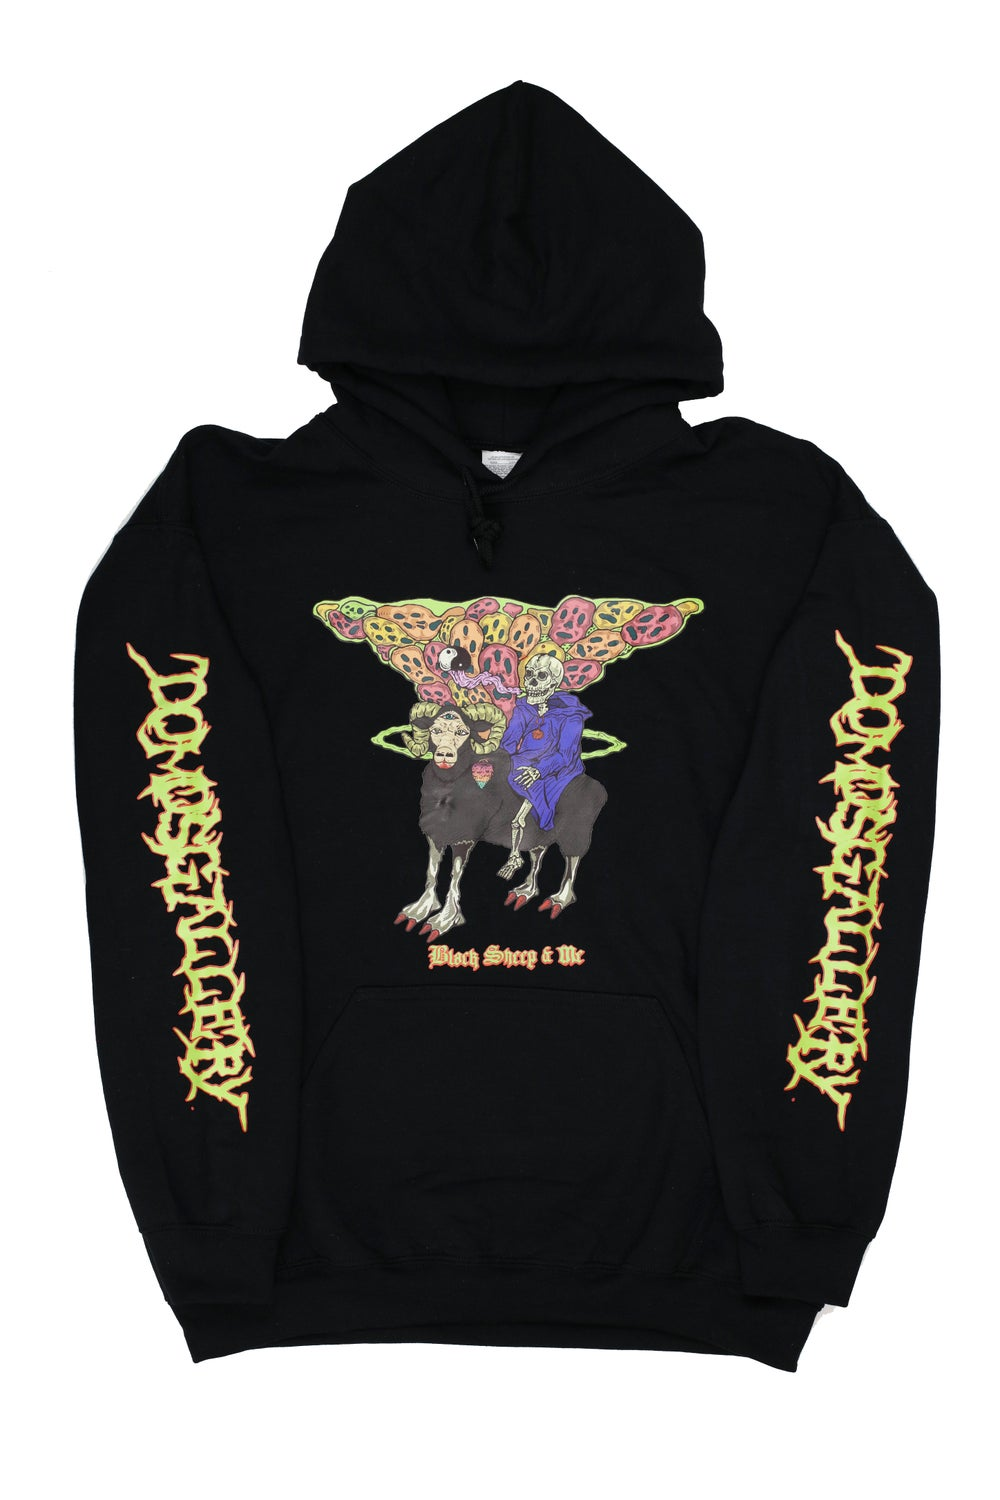 Image of Black 'Black Sheep & Me' Hoody